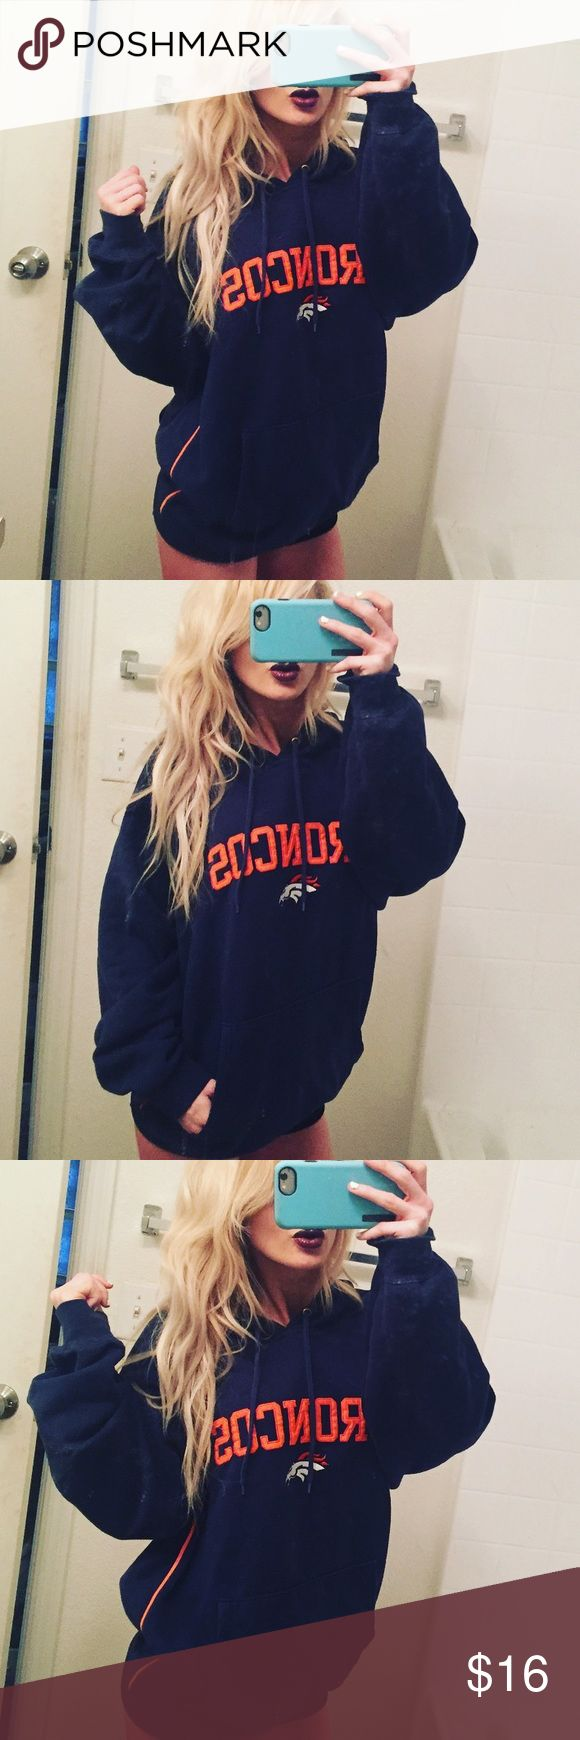 🐴 Denver Broncos pullover Hoodie Size large Denver Broncos large pullover hoodie. Pre-owned but good condition. NFL Tops Sweatshirts & Hoodies